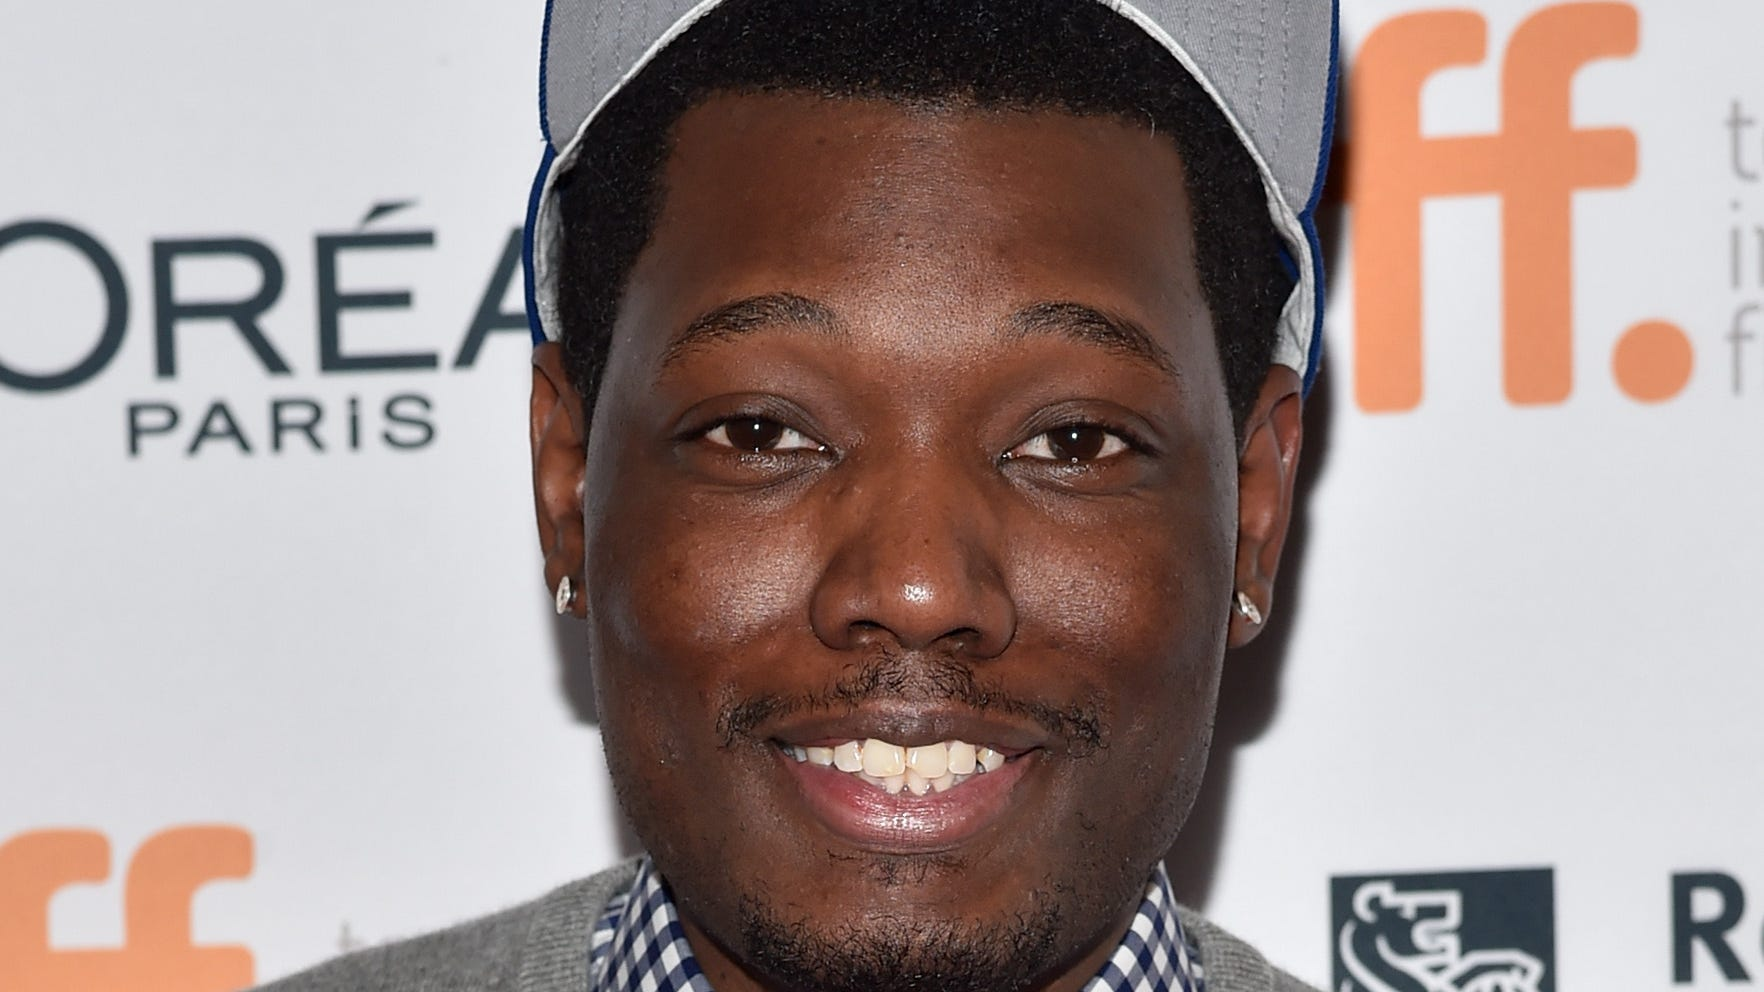 Michael Che of 'Saturday Night Live' says president 'is supposed to know the law' - USA TODAY